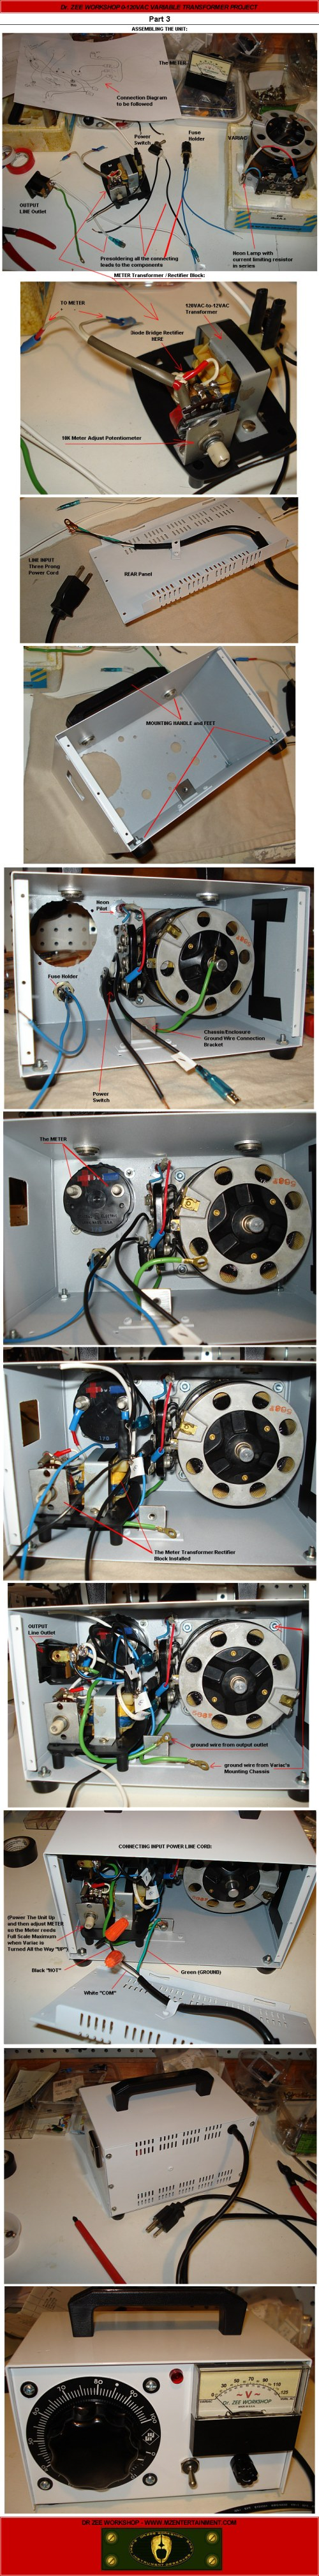 small resolution of dr zee workshop variac circuit and wiring diagram powerstat variable transformers 21 22 40 series installation operation and maintenance